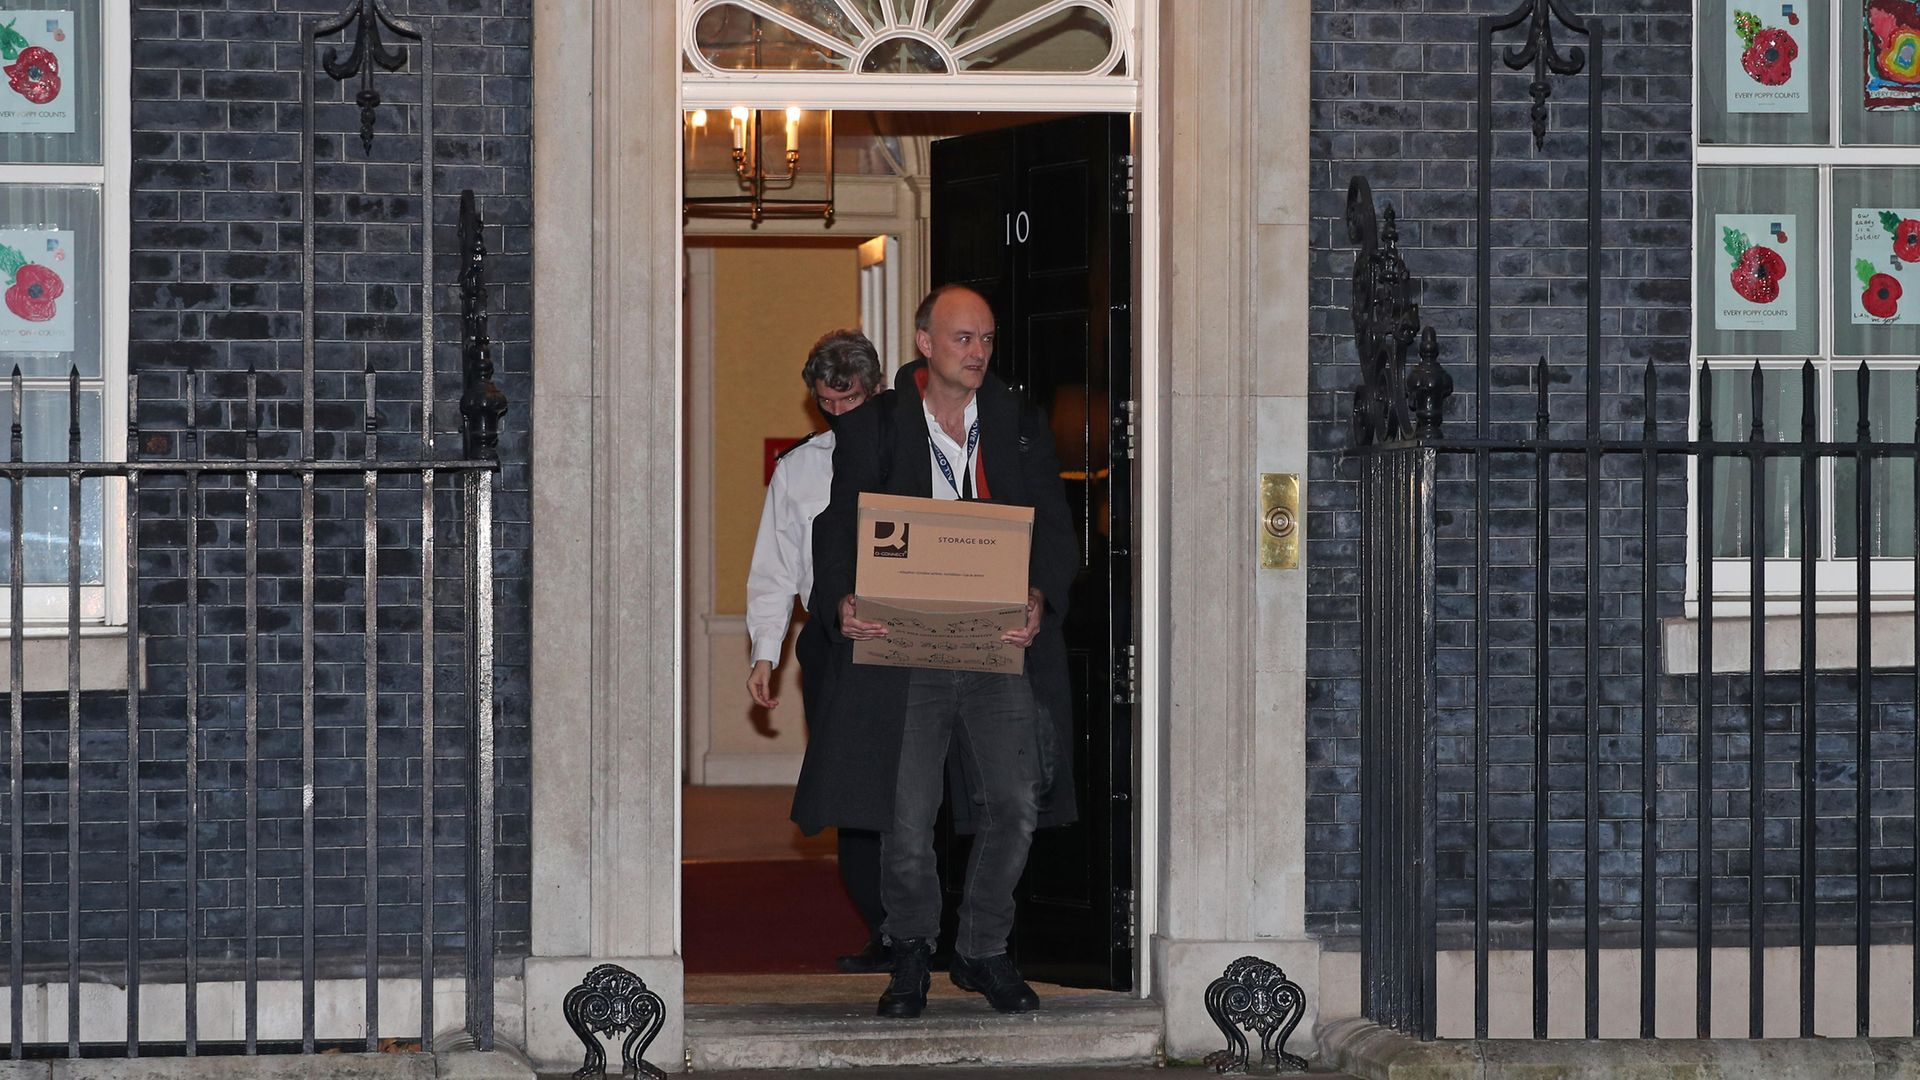 Dominic Cummings leaves 10 Downing Street, London, following his resignation - Credit: PA